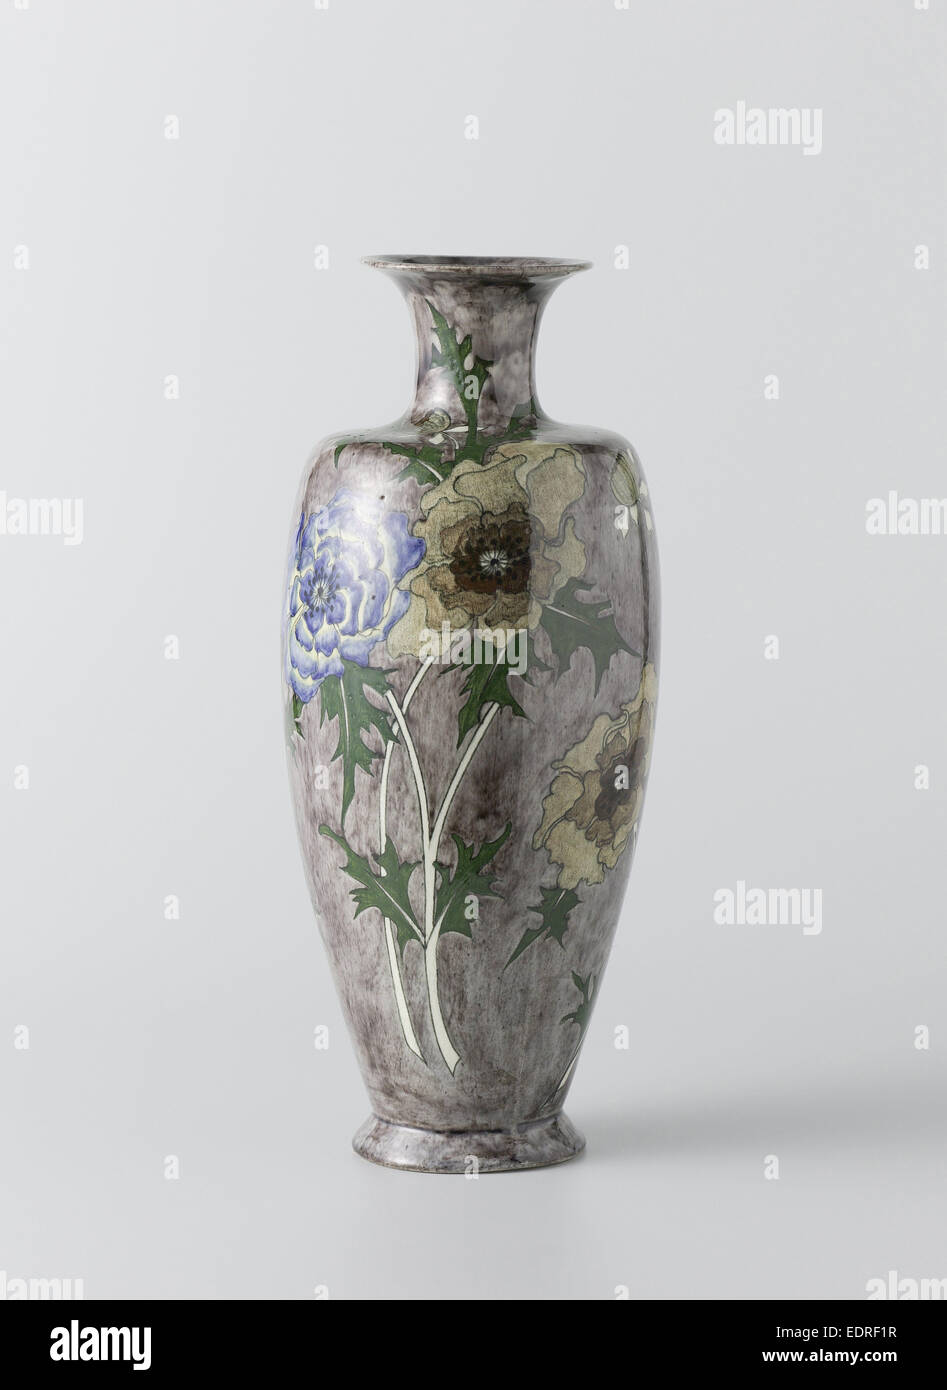 Vase with painting of flowers, Firma Wed. N.S.A. Brantjes en Co., Philippus Lagrand, 1895 - 1904 - Stock Image